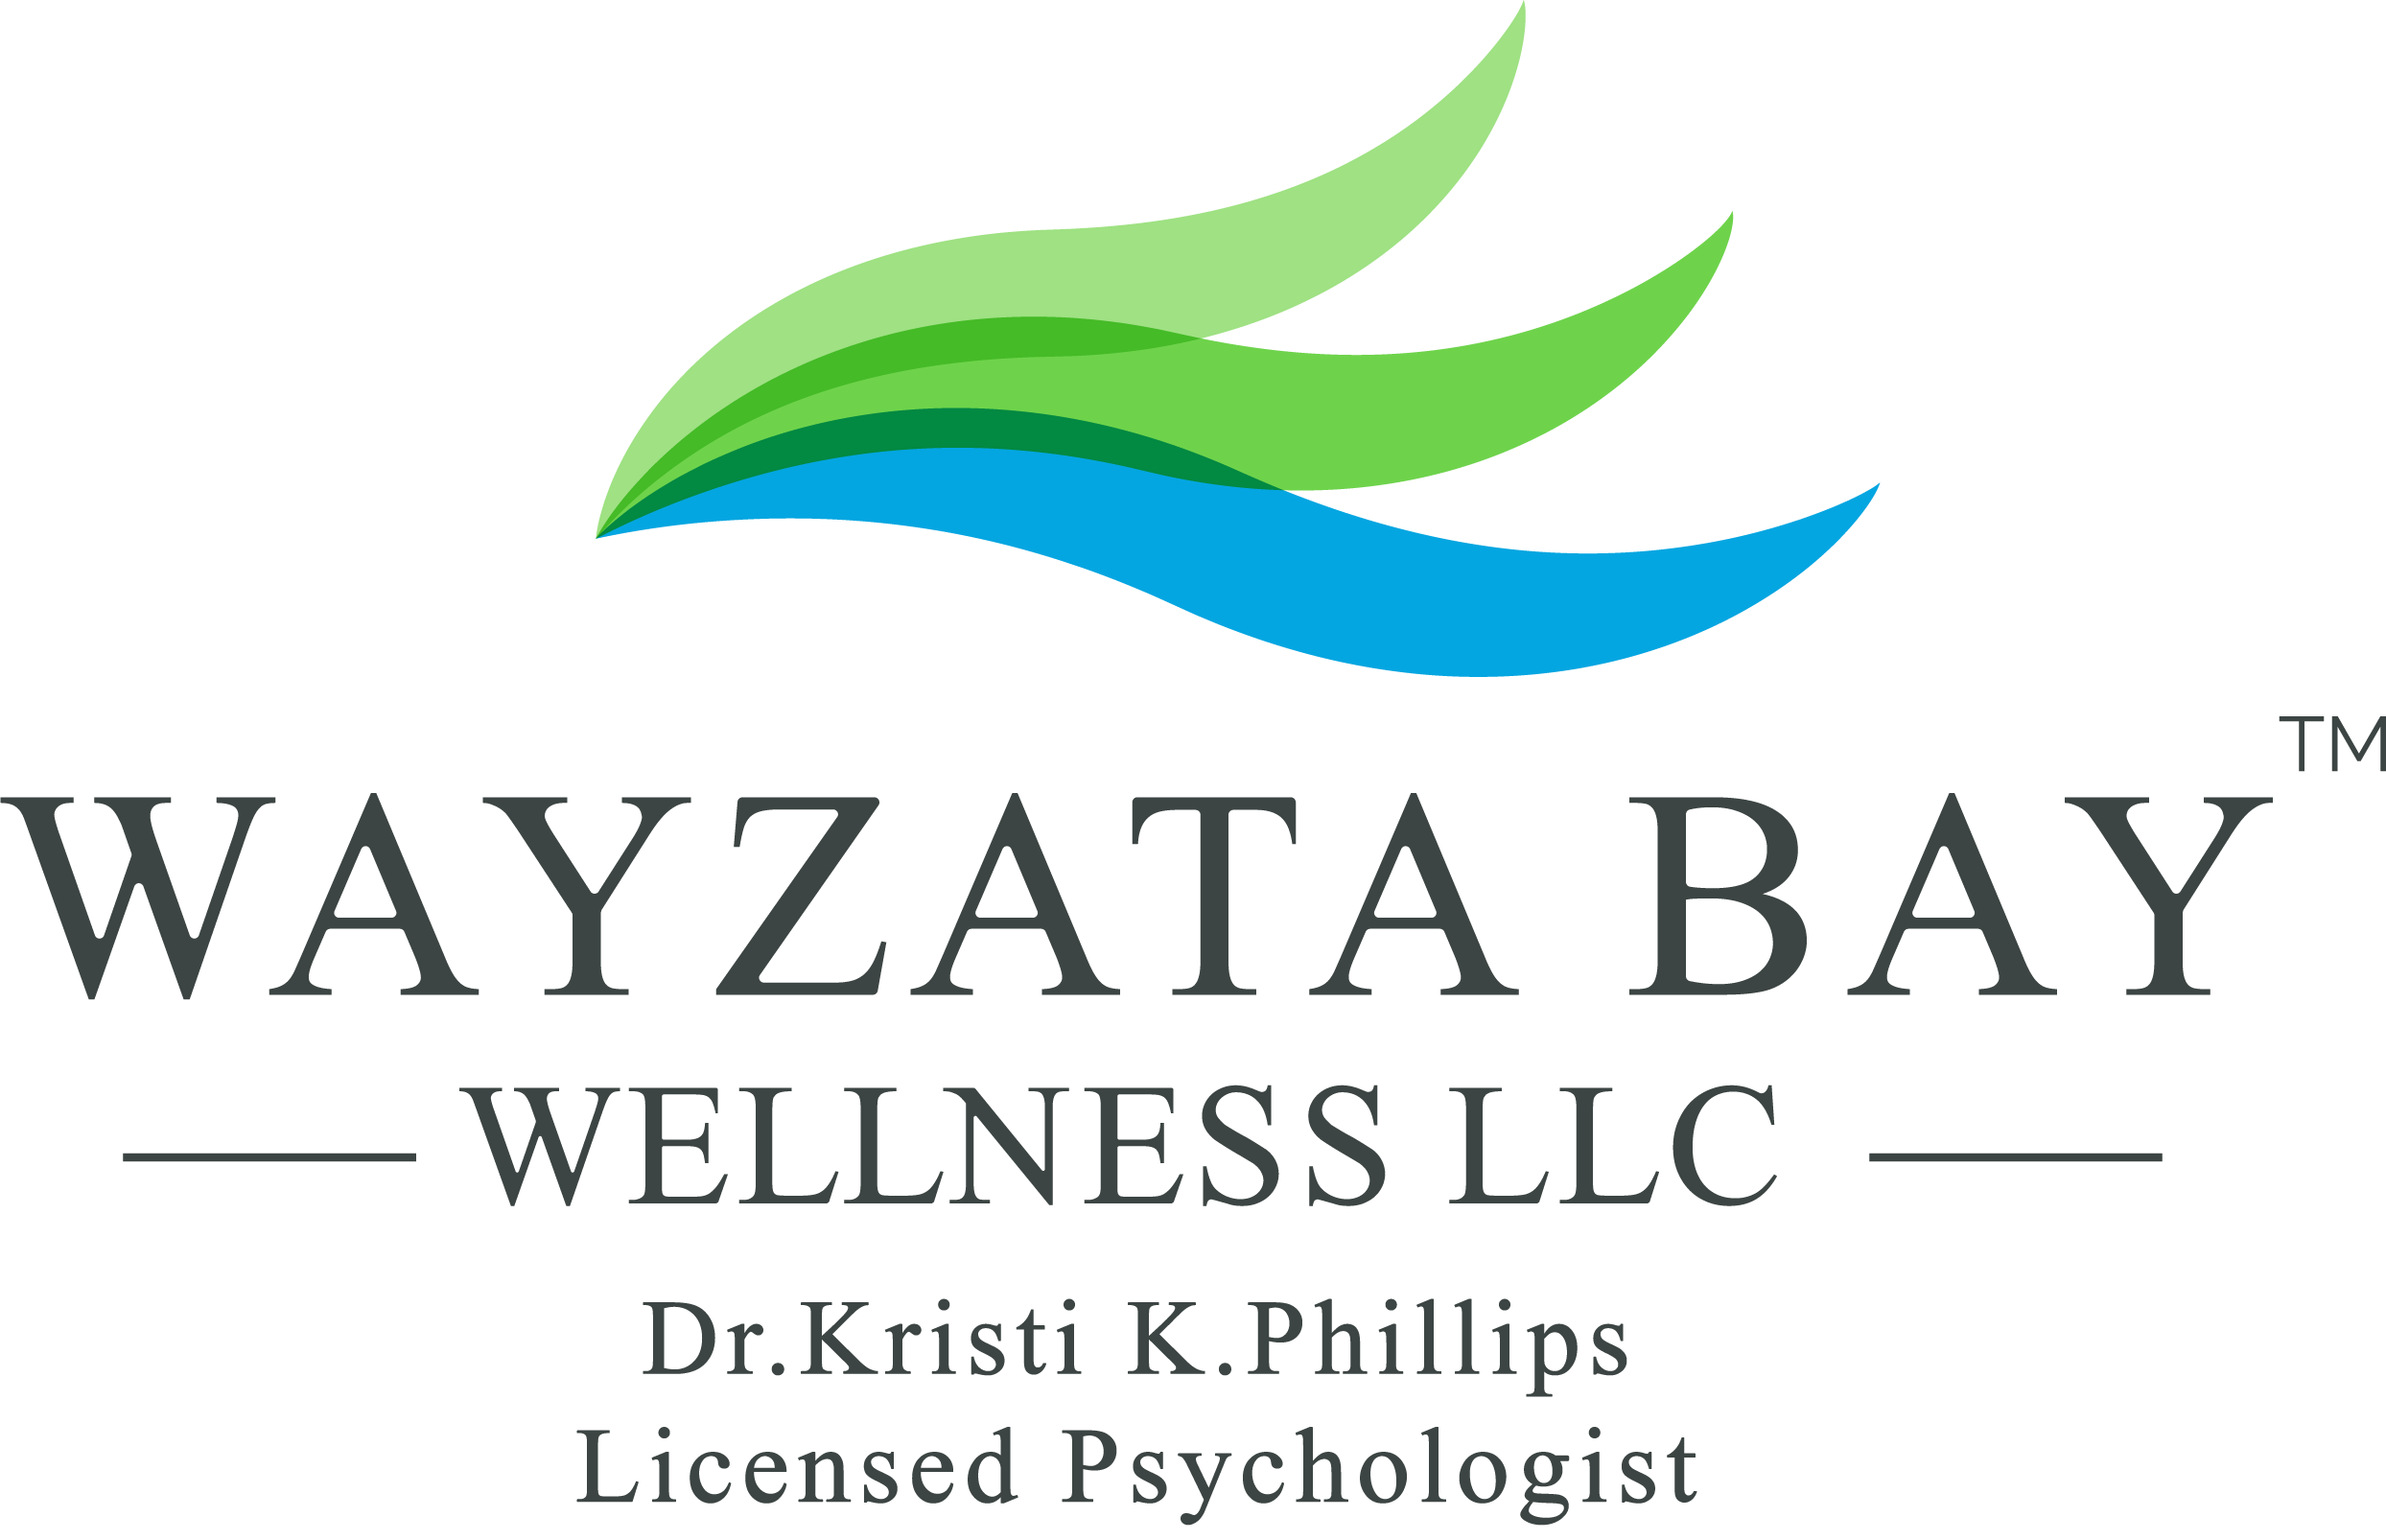 Wayzata Bay Wellness